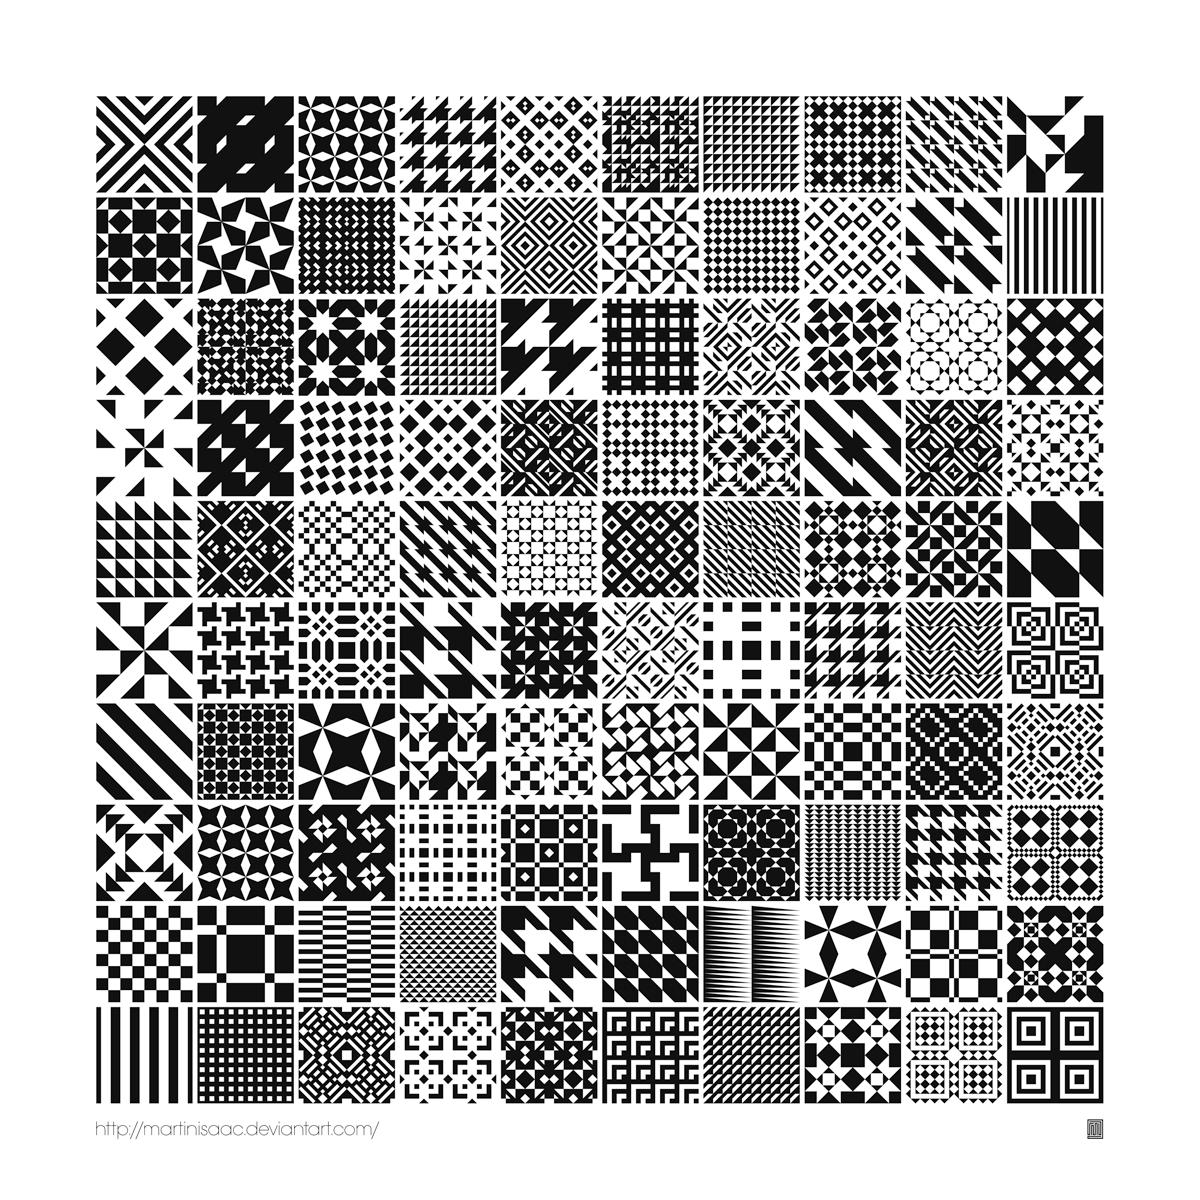 Monochrome geometric patterns by martinisaac on deviantart Geometric patterns